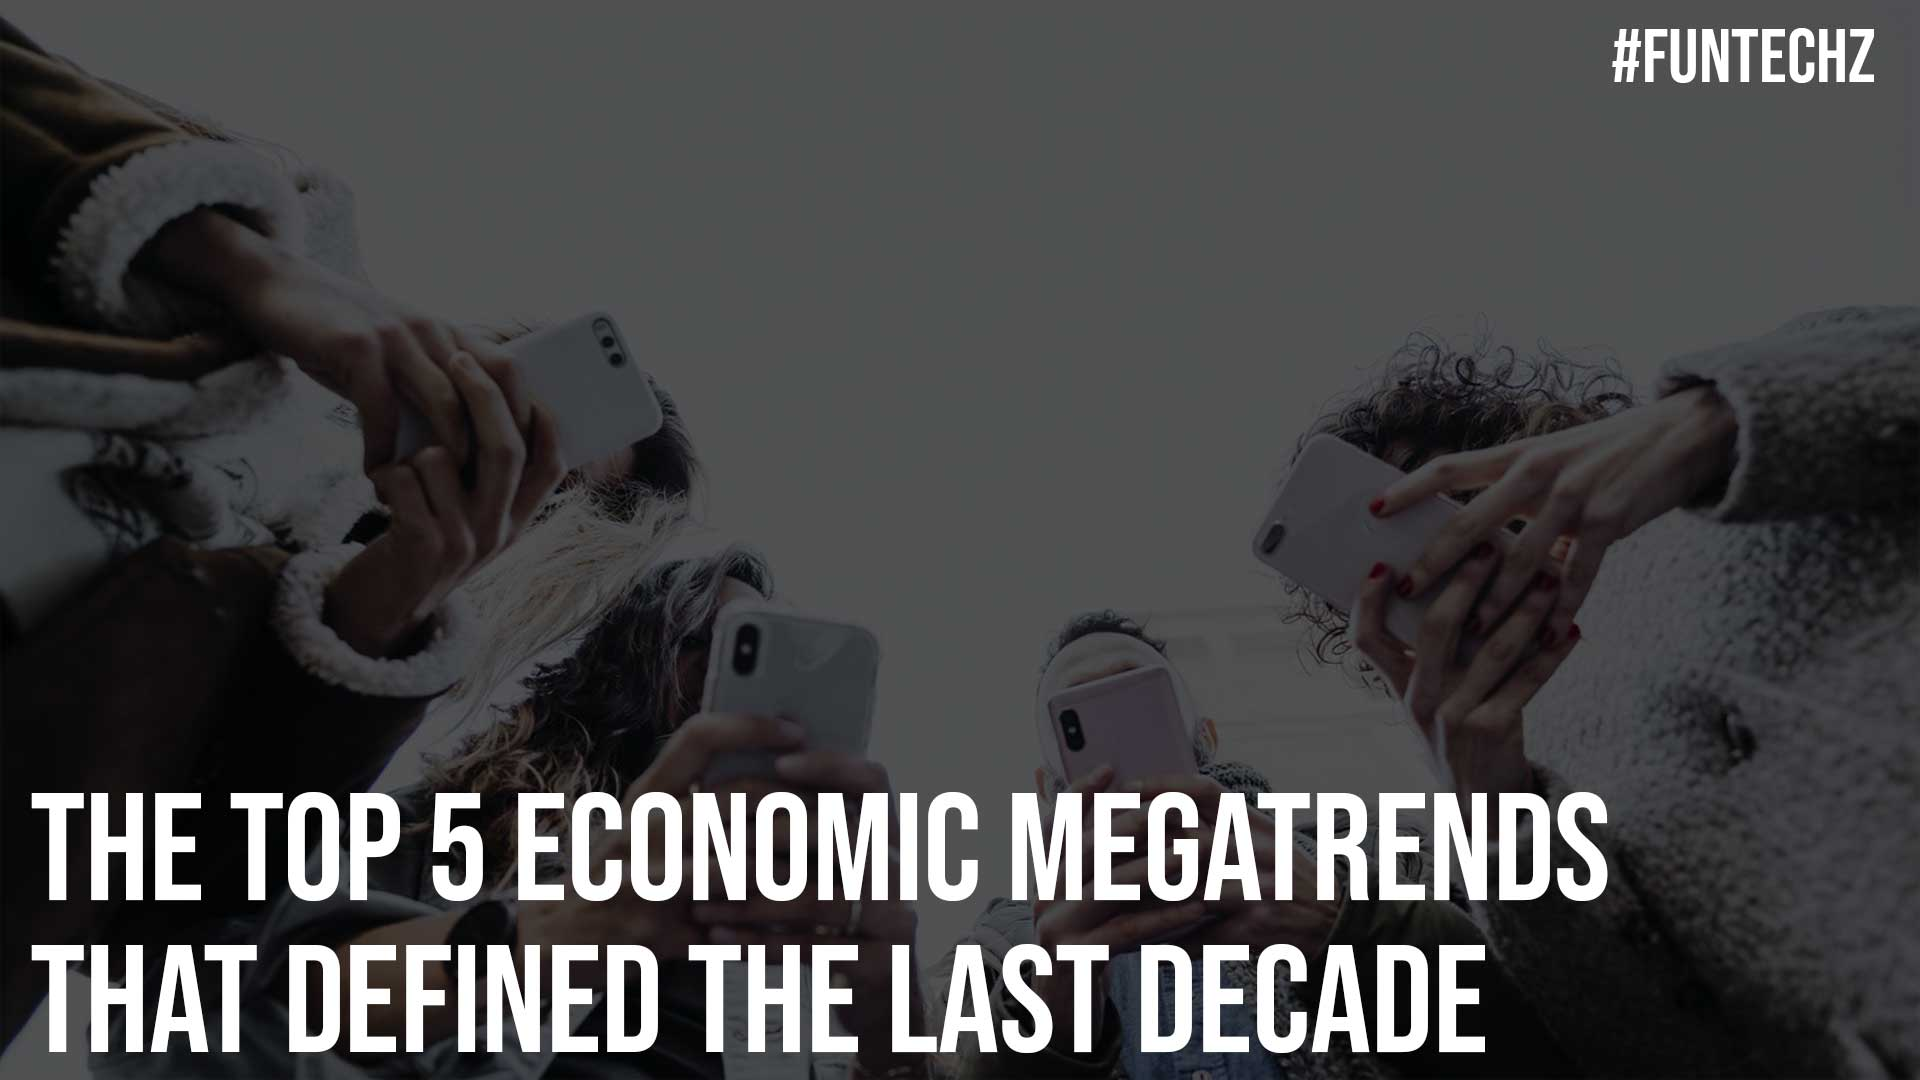 The Top 5 Economic Megatrends That Defined The Last Decade